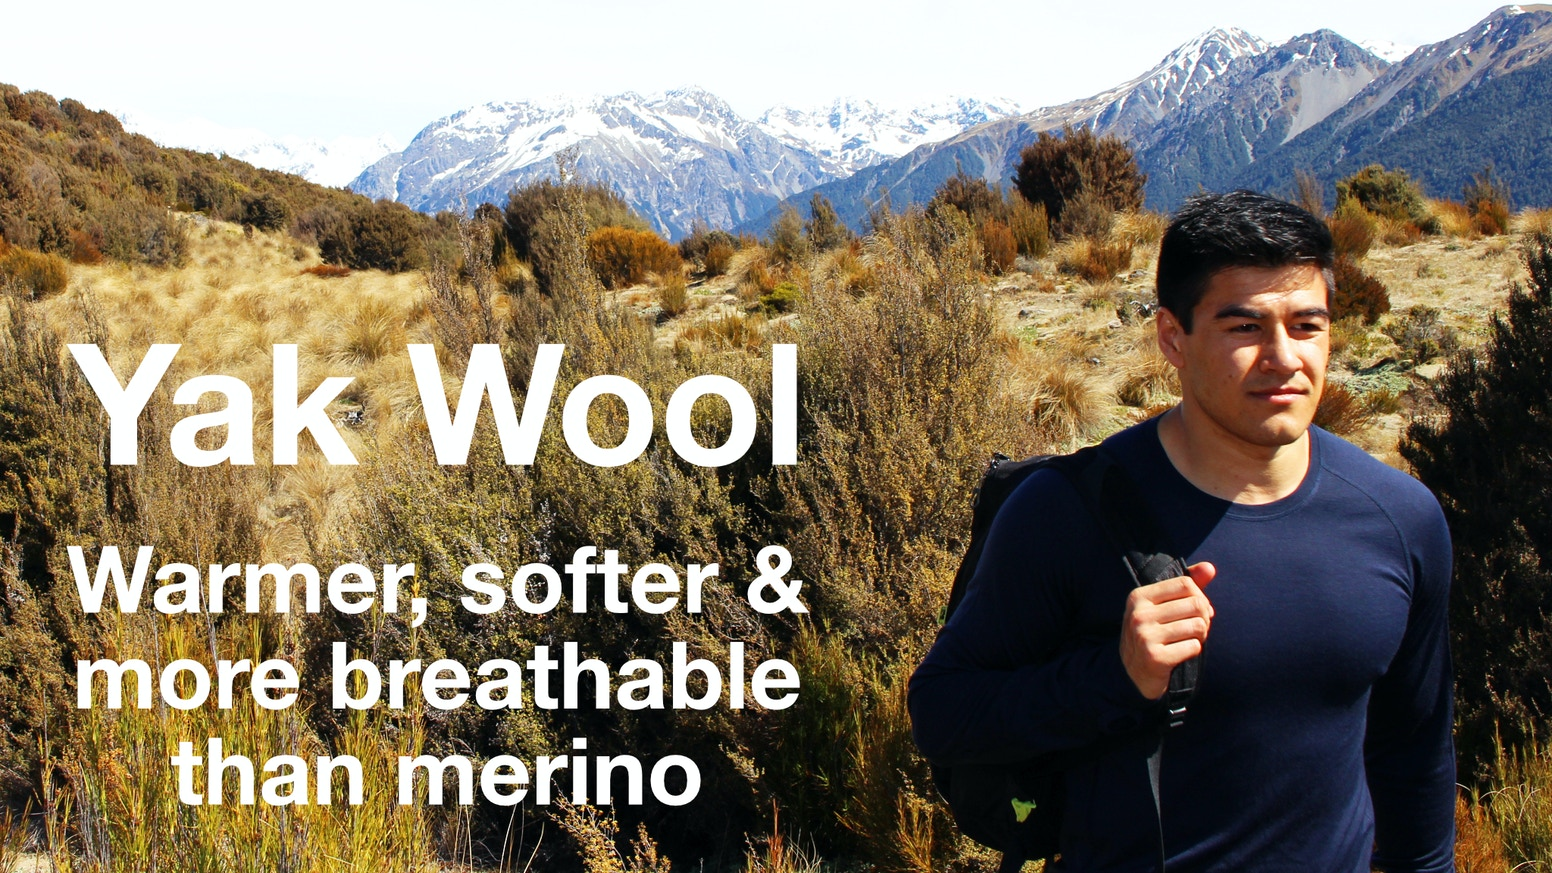 The World's Best Baselayers made with Yak wool from the Tibetan Plateau. Warmer, softer and more breathable than merino wool.